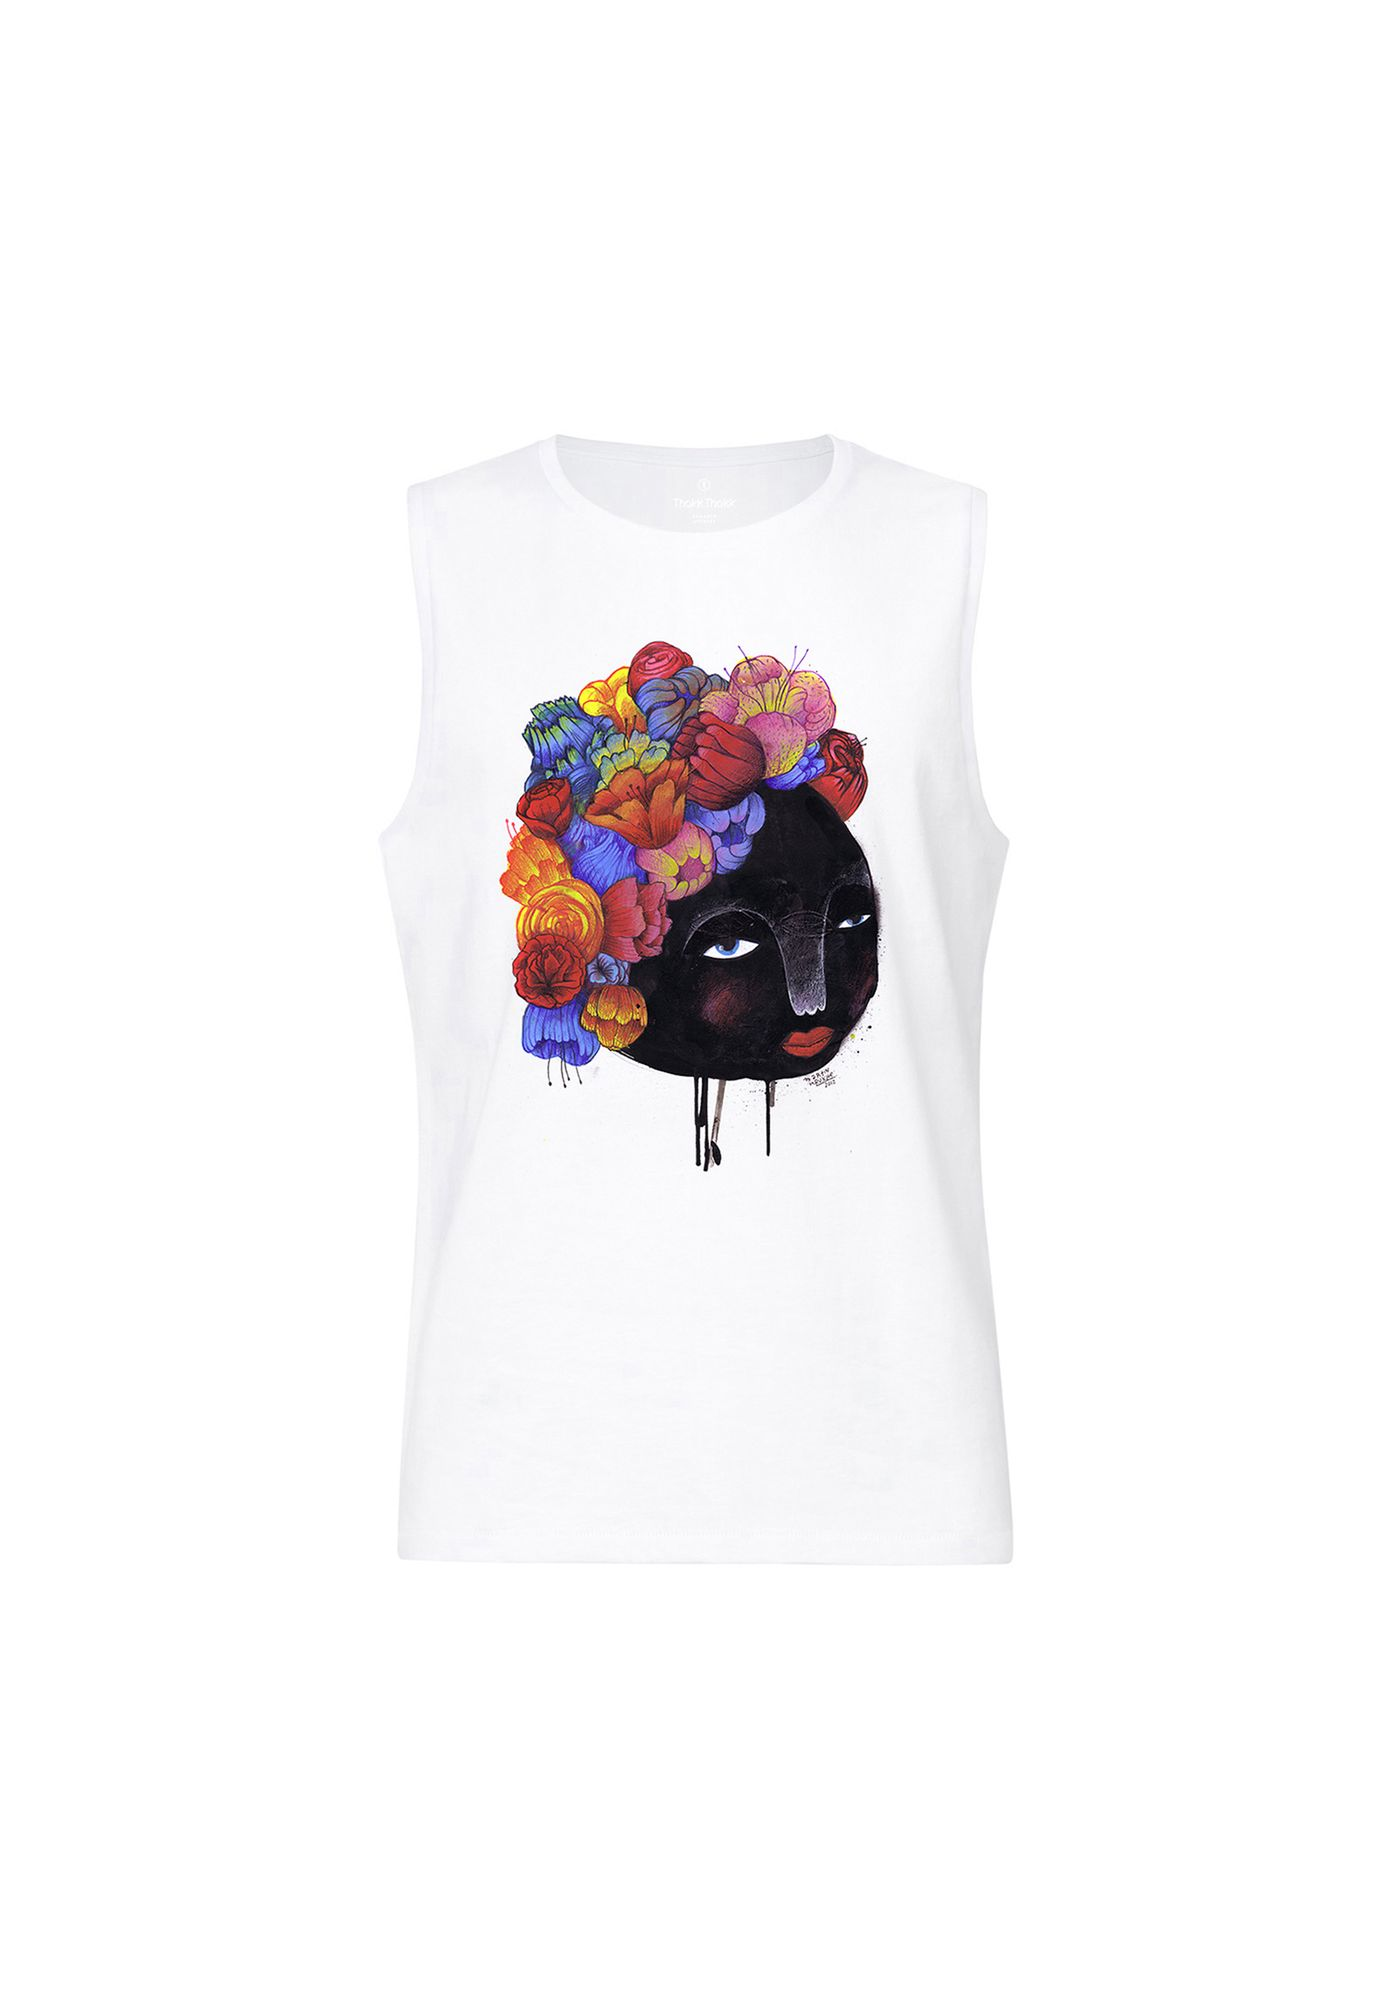 Sleeveless Shirt Blumenhaar White